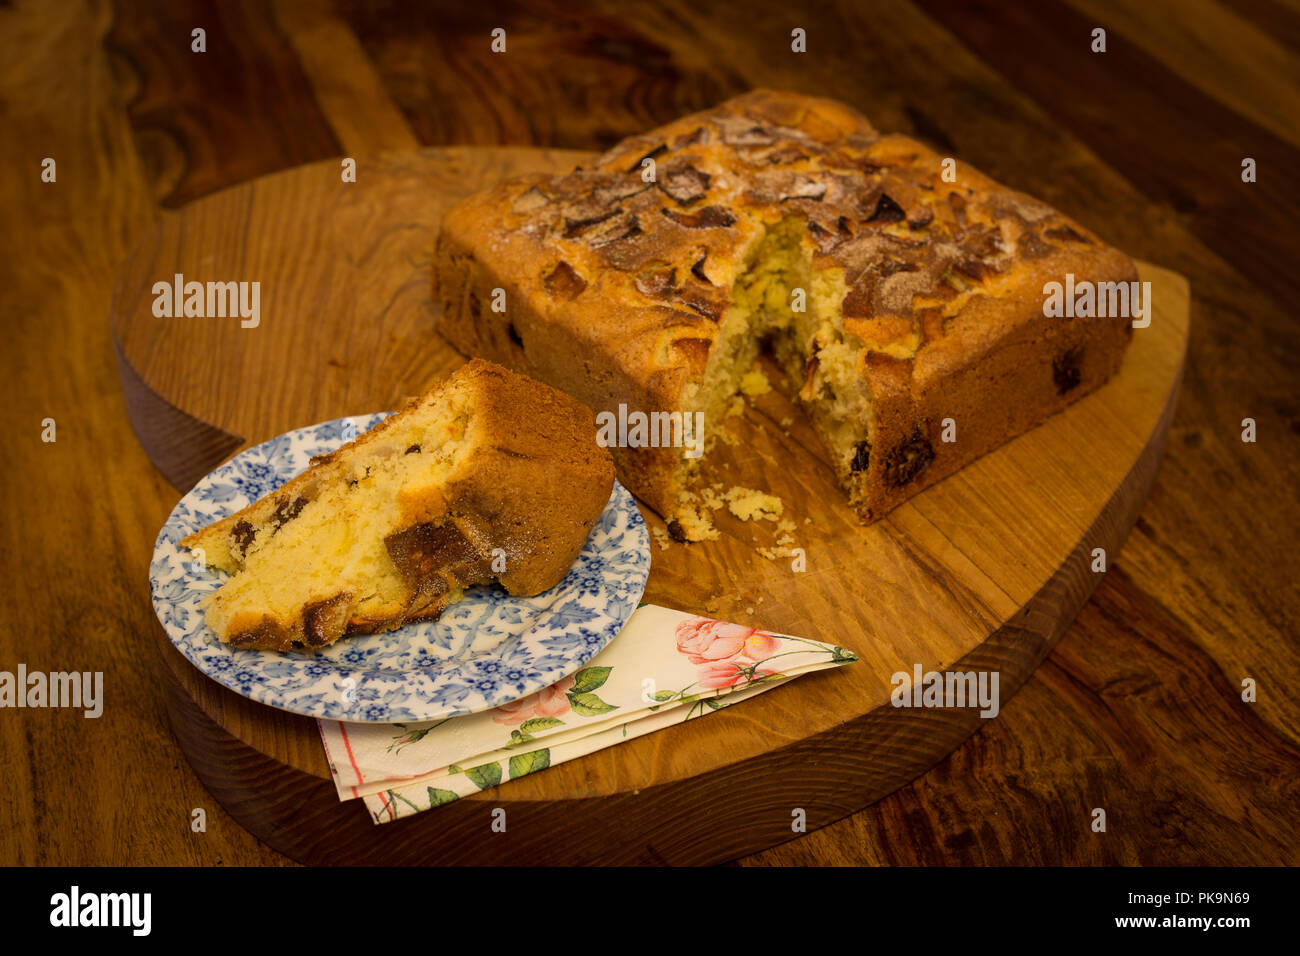 Apple Cake On Heart Shaped Chopping Board Wooden Table One Slice Cut Side Plate With Napkin